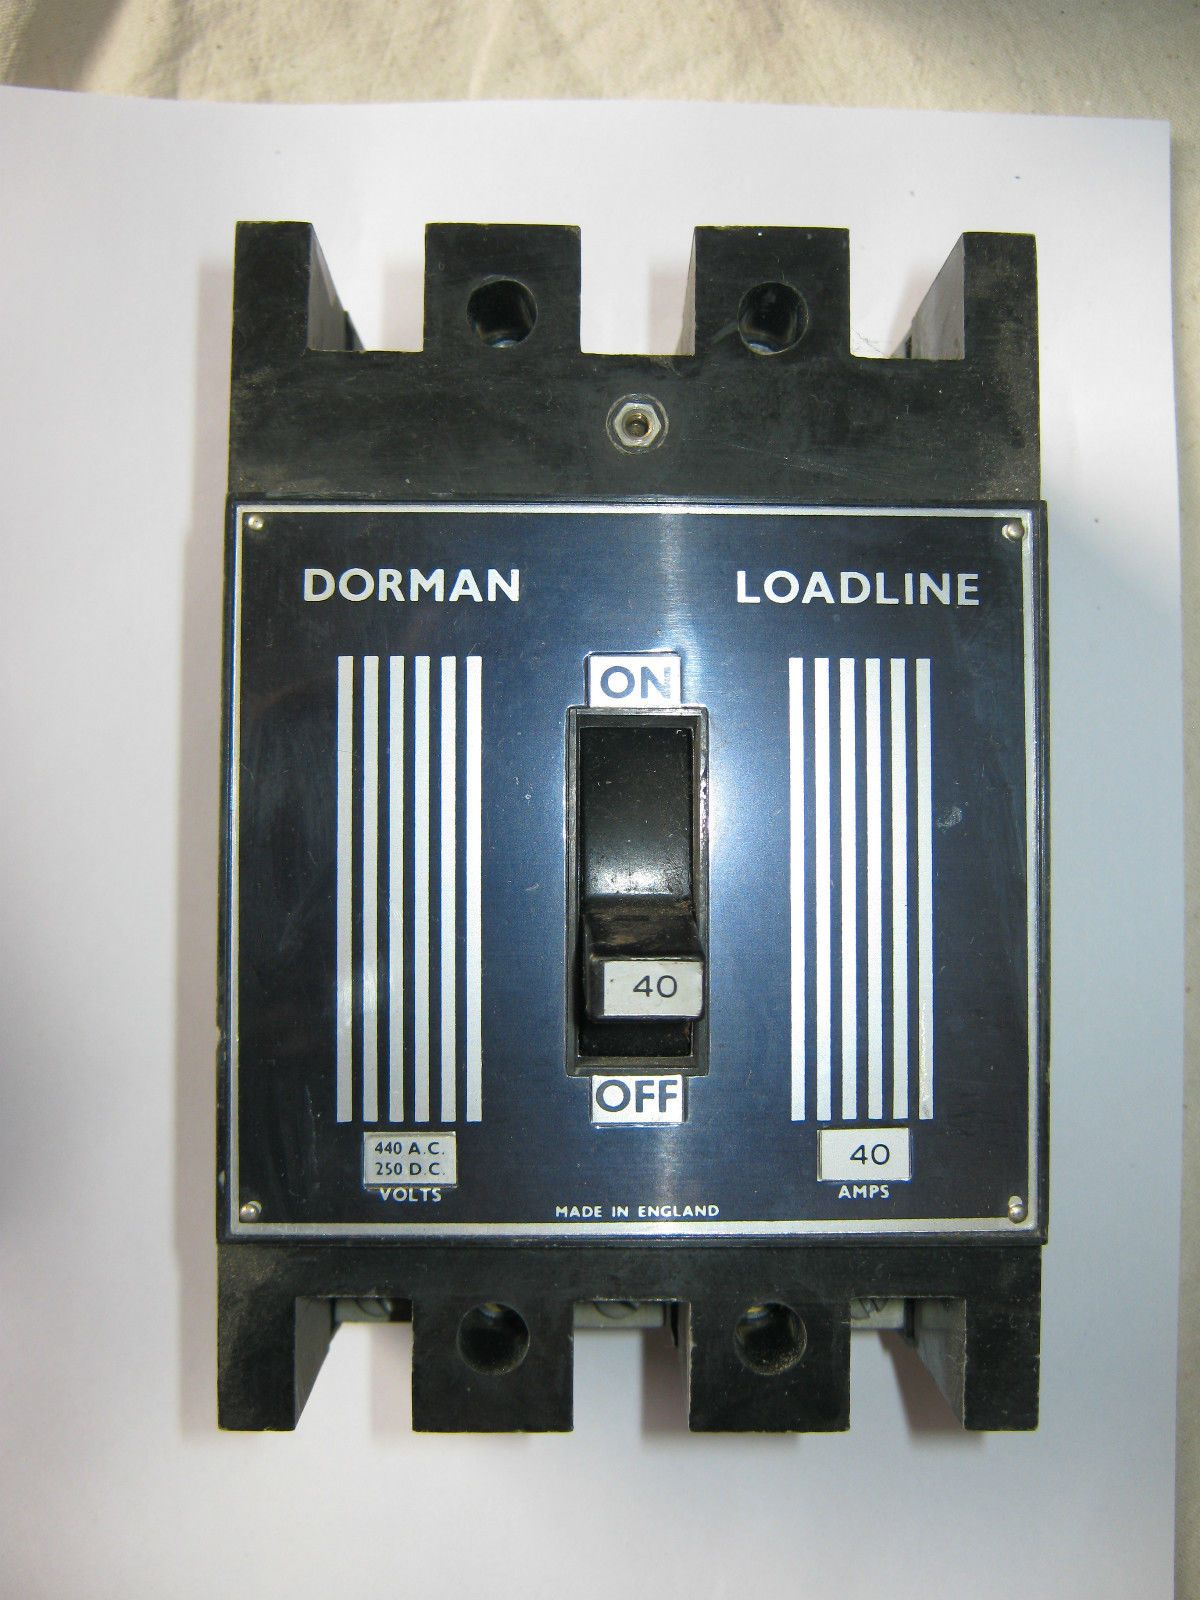 Dorman Smith Loadline 40 Amp 440v Mccb Circuit Breaker